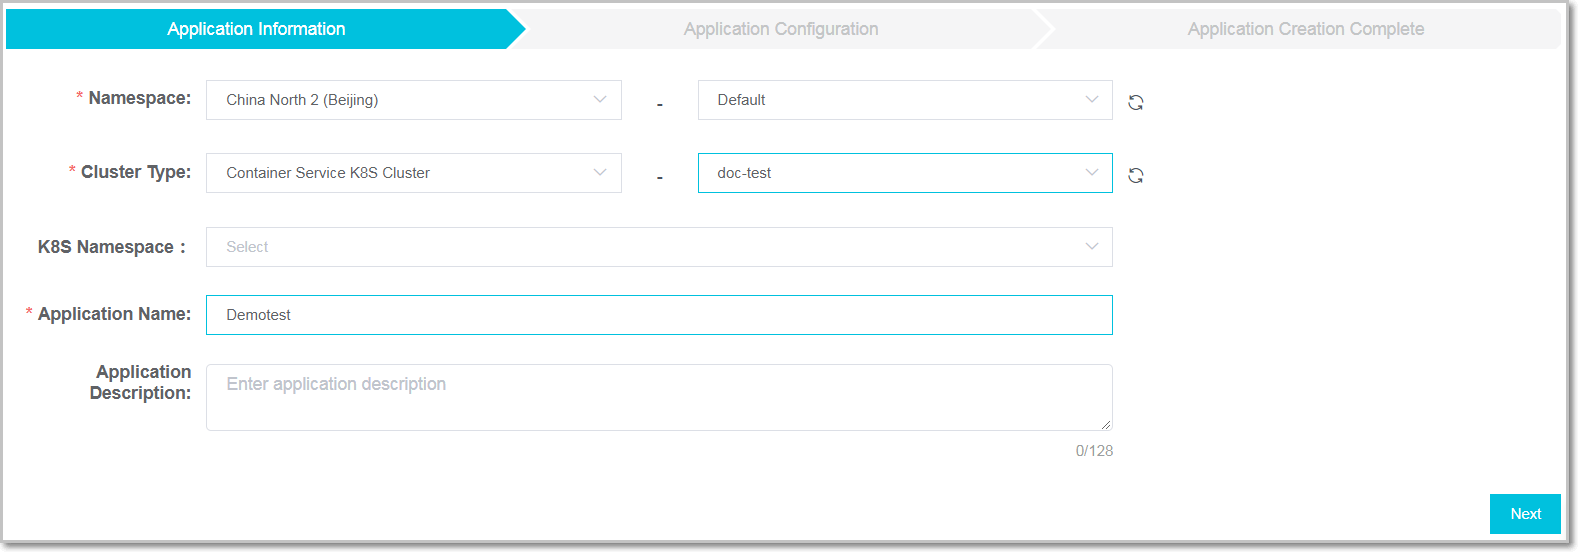 Create app in acsk8s cluster